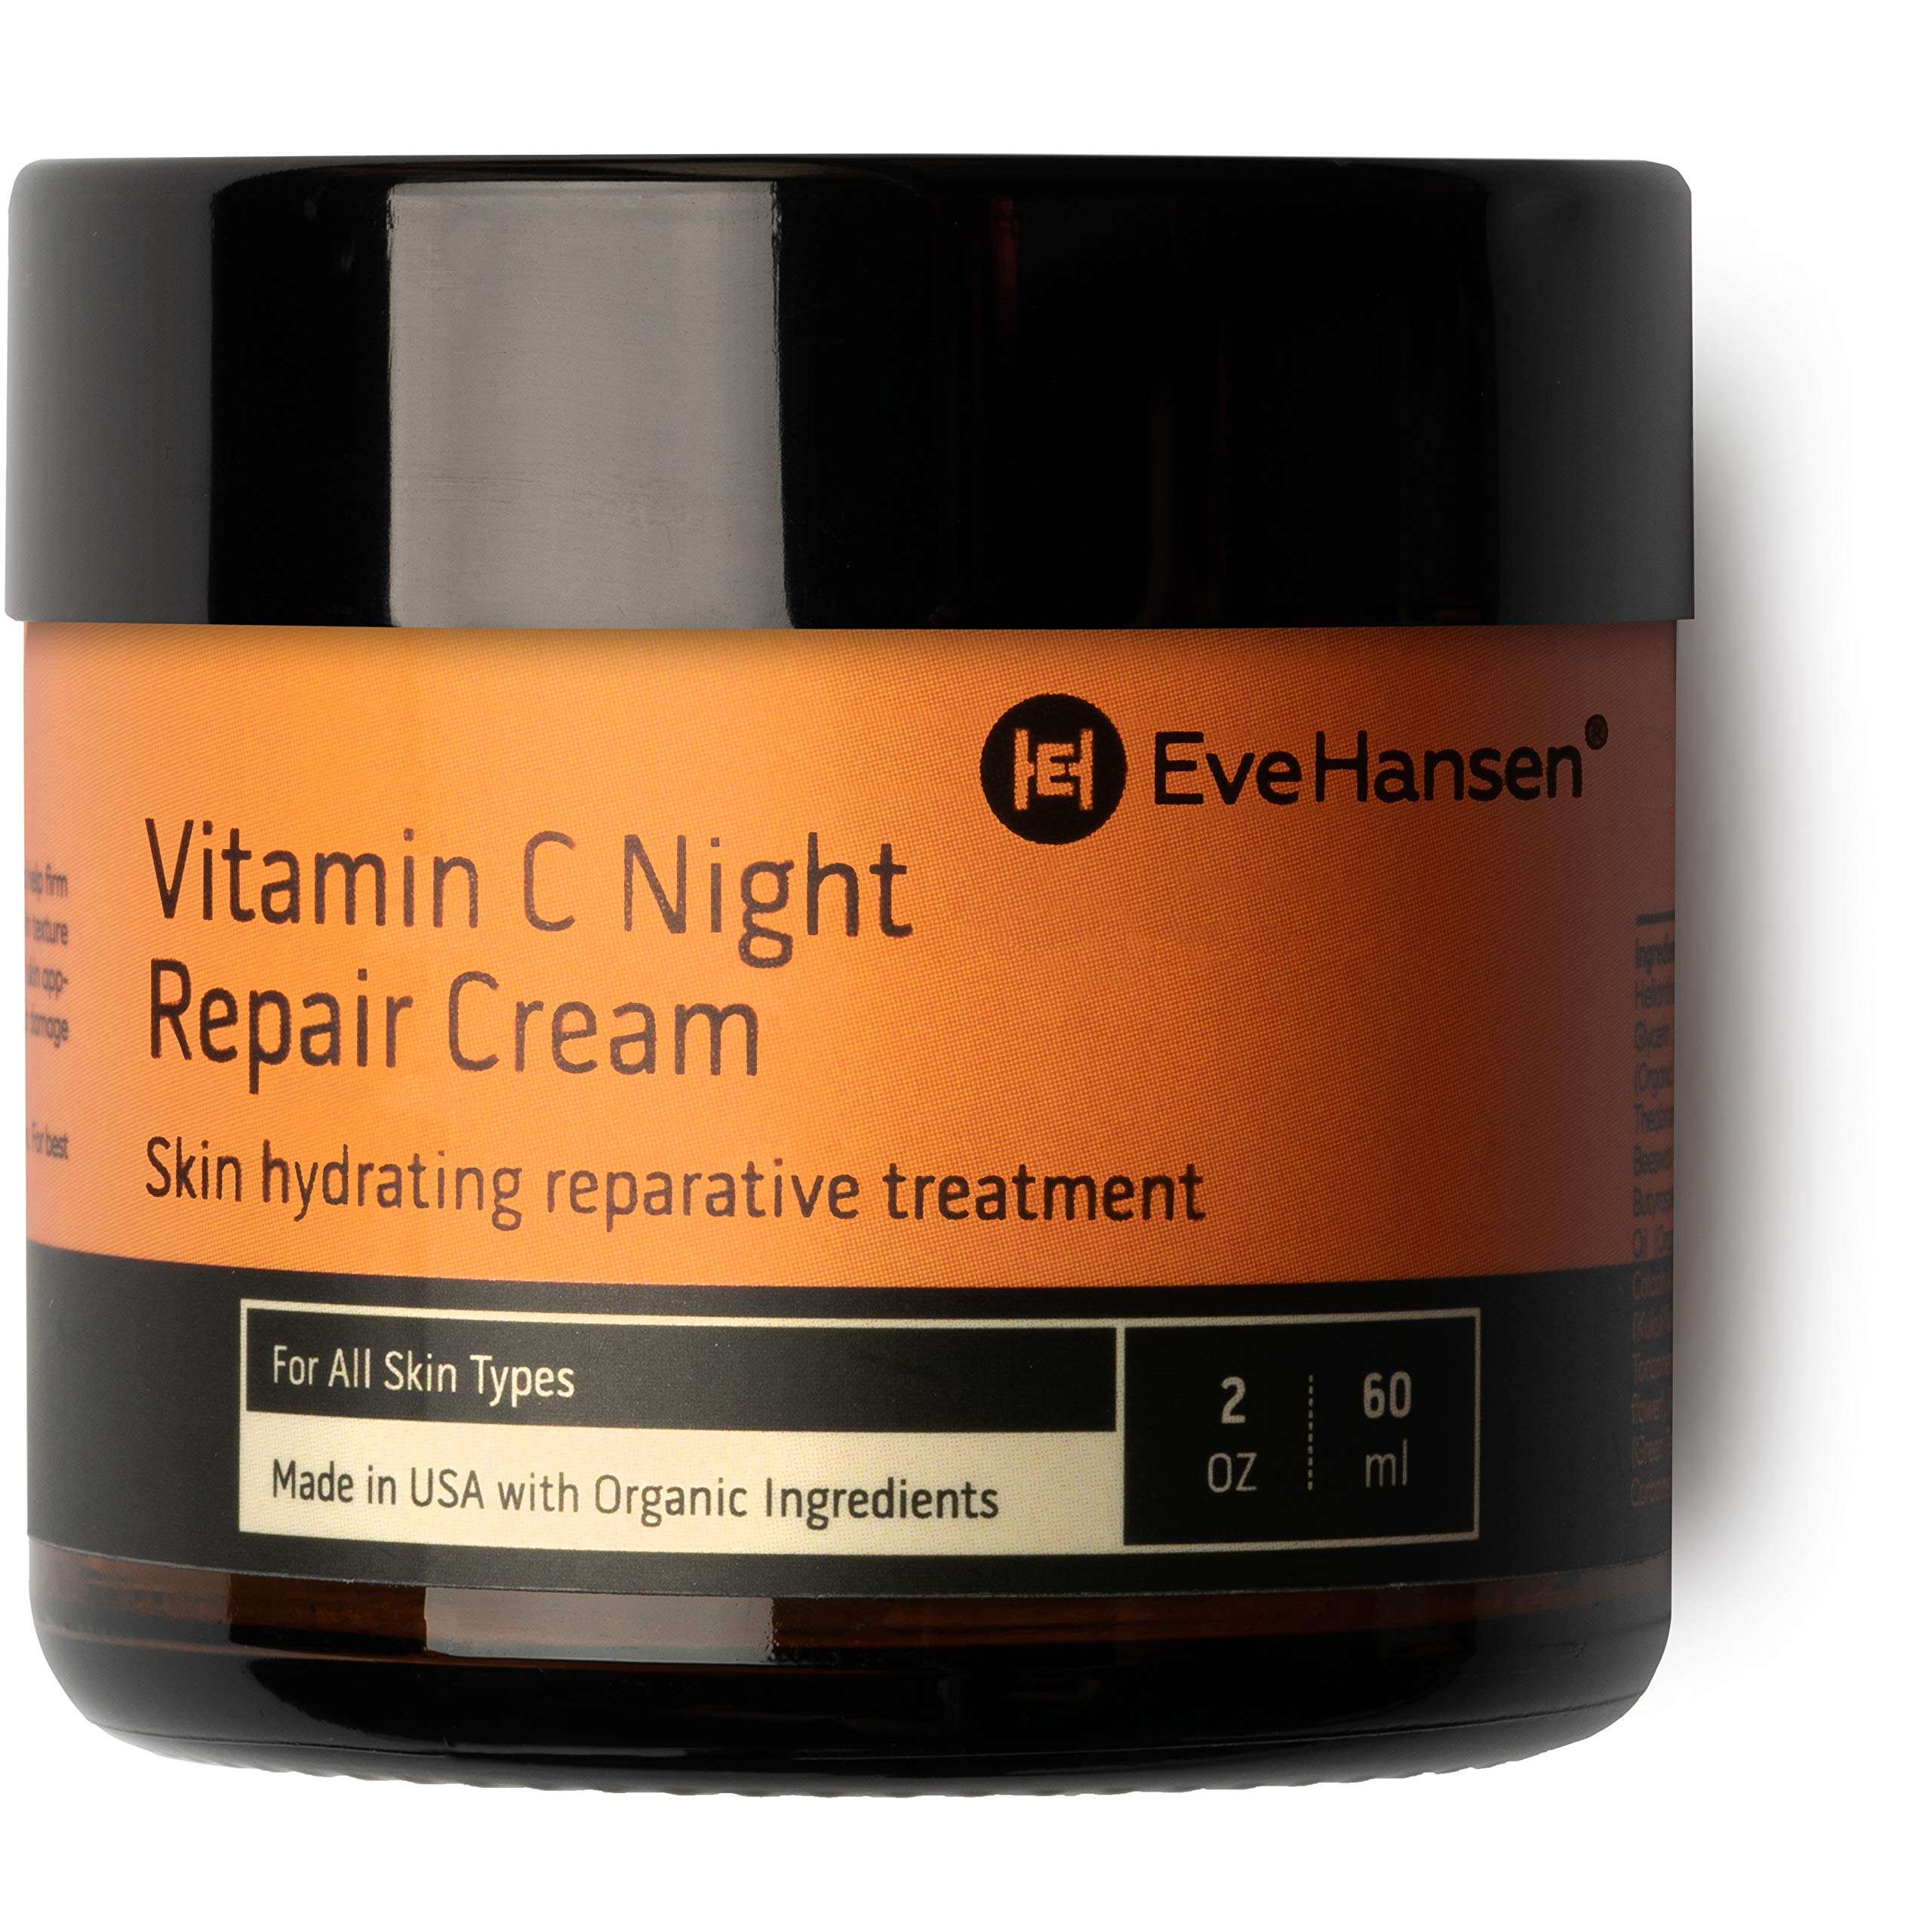 Eve Hansen Vitamin C Night Cream | Anti Aging Face Cream, Neck Cream, Vitamin C Cream, Vitamin E Cream | Natural Face Moisturizer for Acne Scar Removal, Dark Circles and Wrinkle Filler Skin Cream 2 oz by Eve Hansen